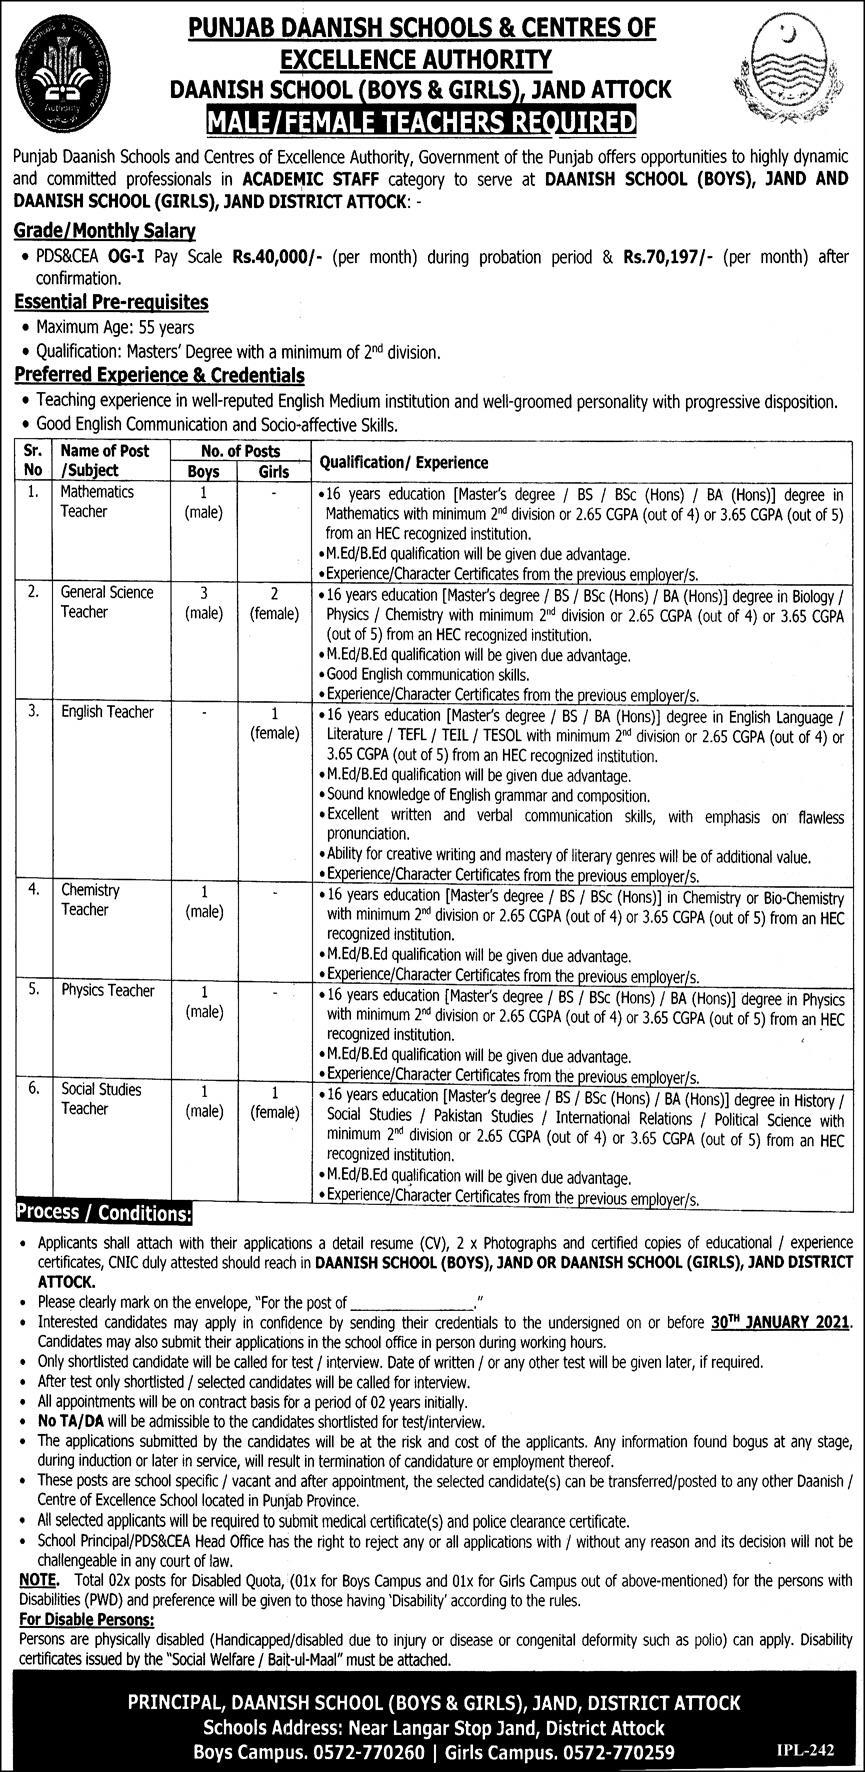 Punjab Daanish Schools and Centers of Excellence Authority Jobs Jan 2021